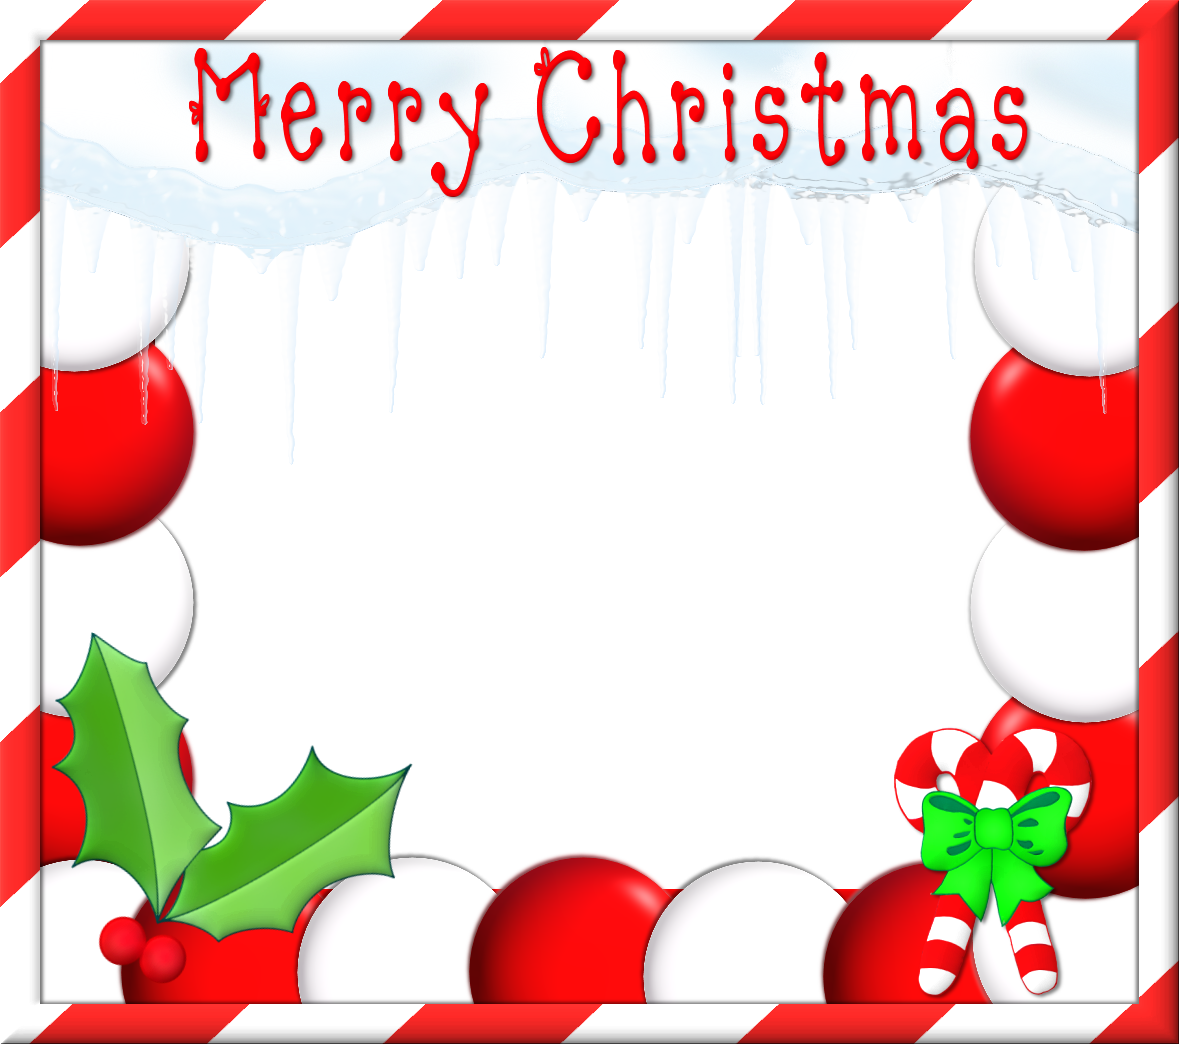 Free Christmas Clipart Border.